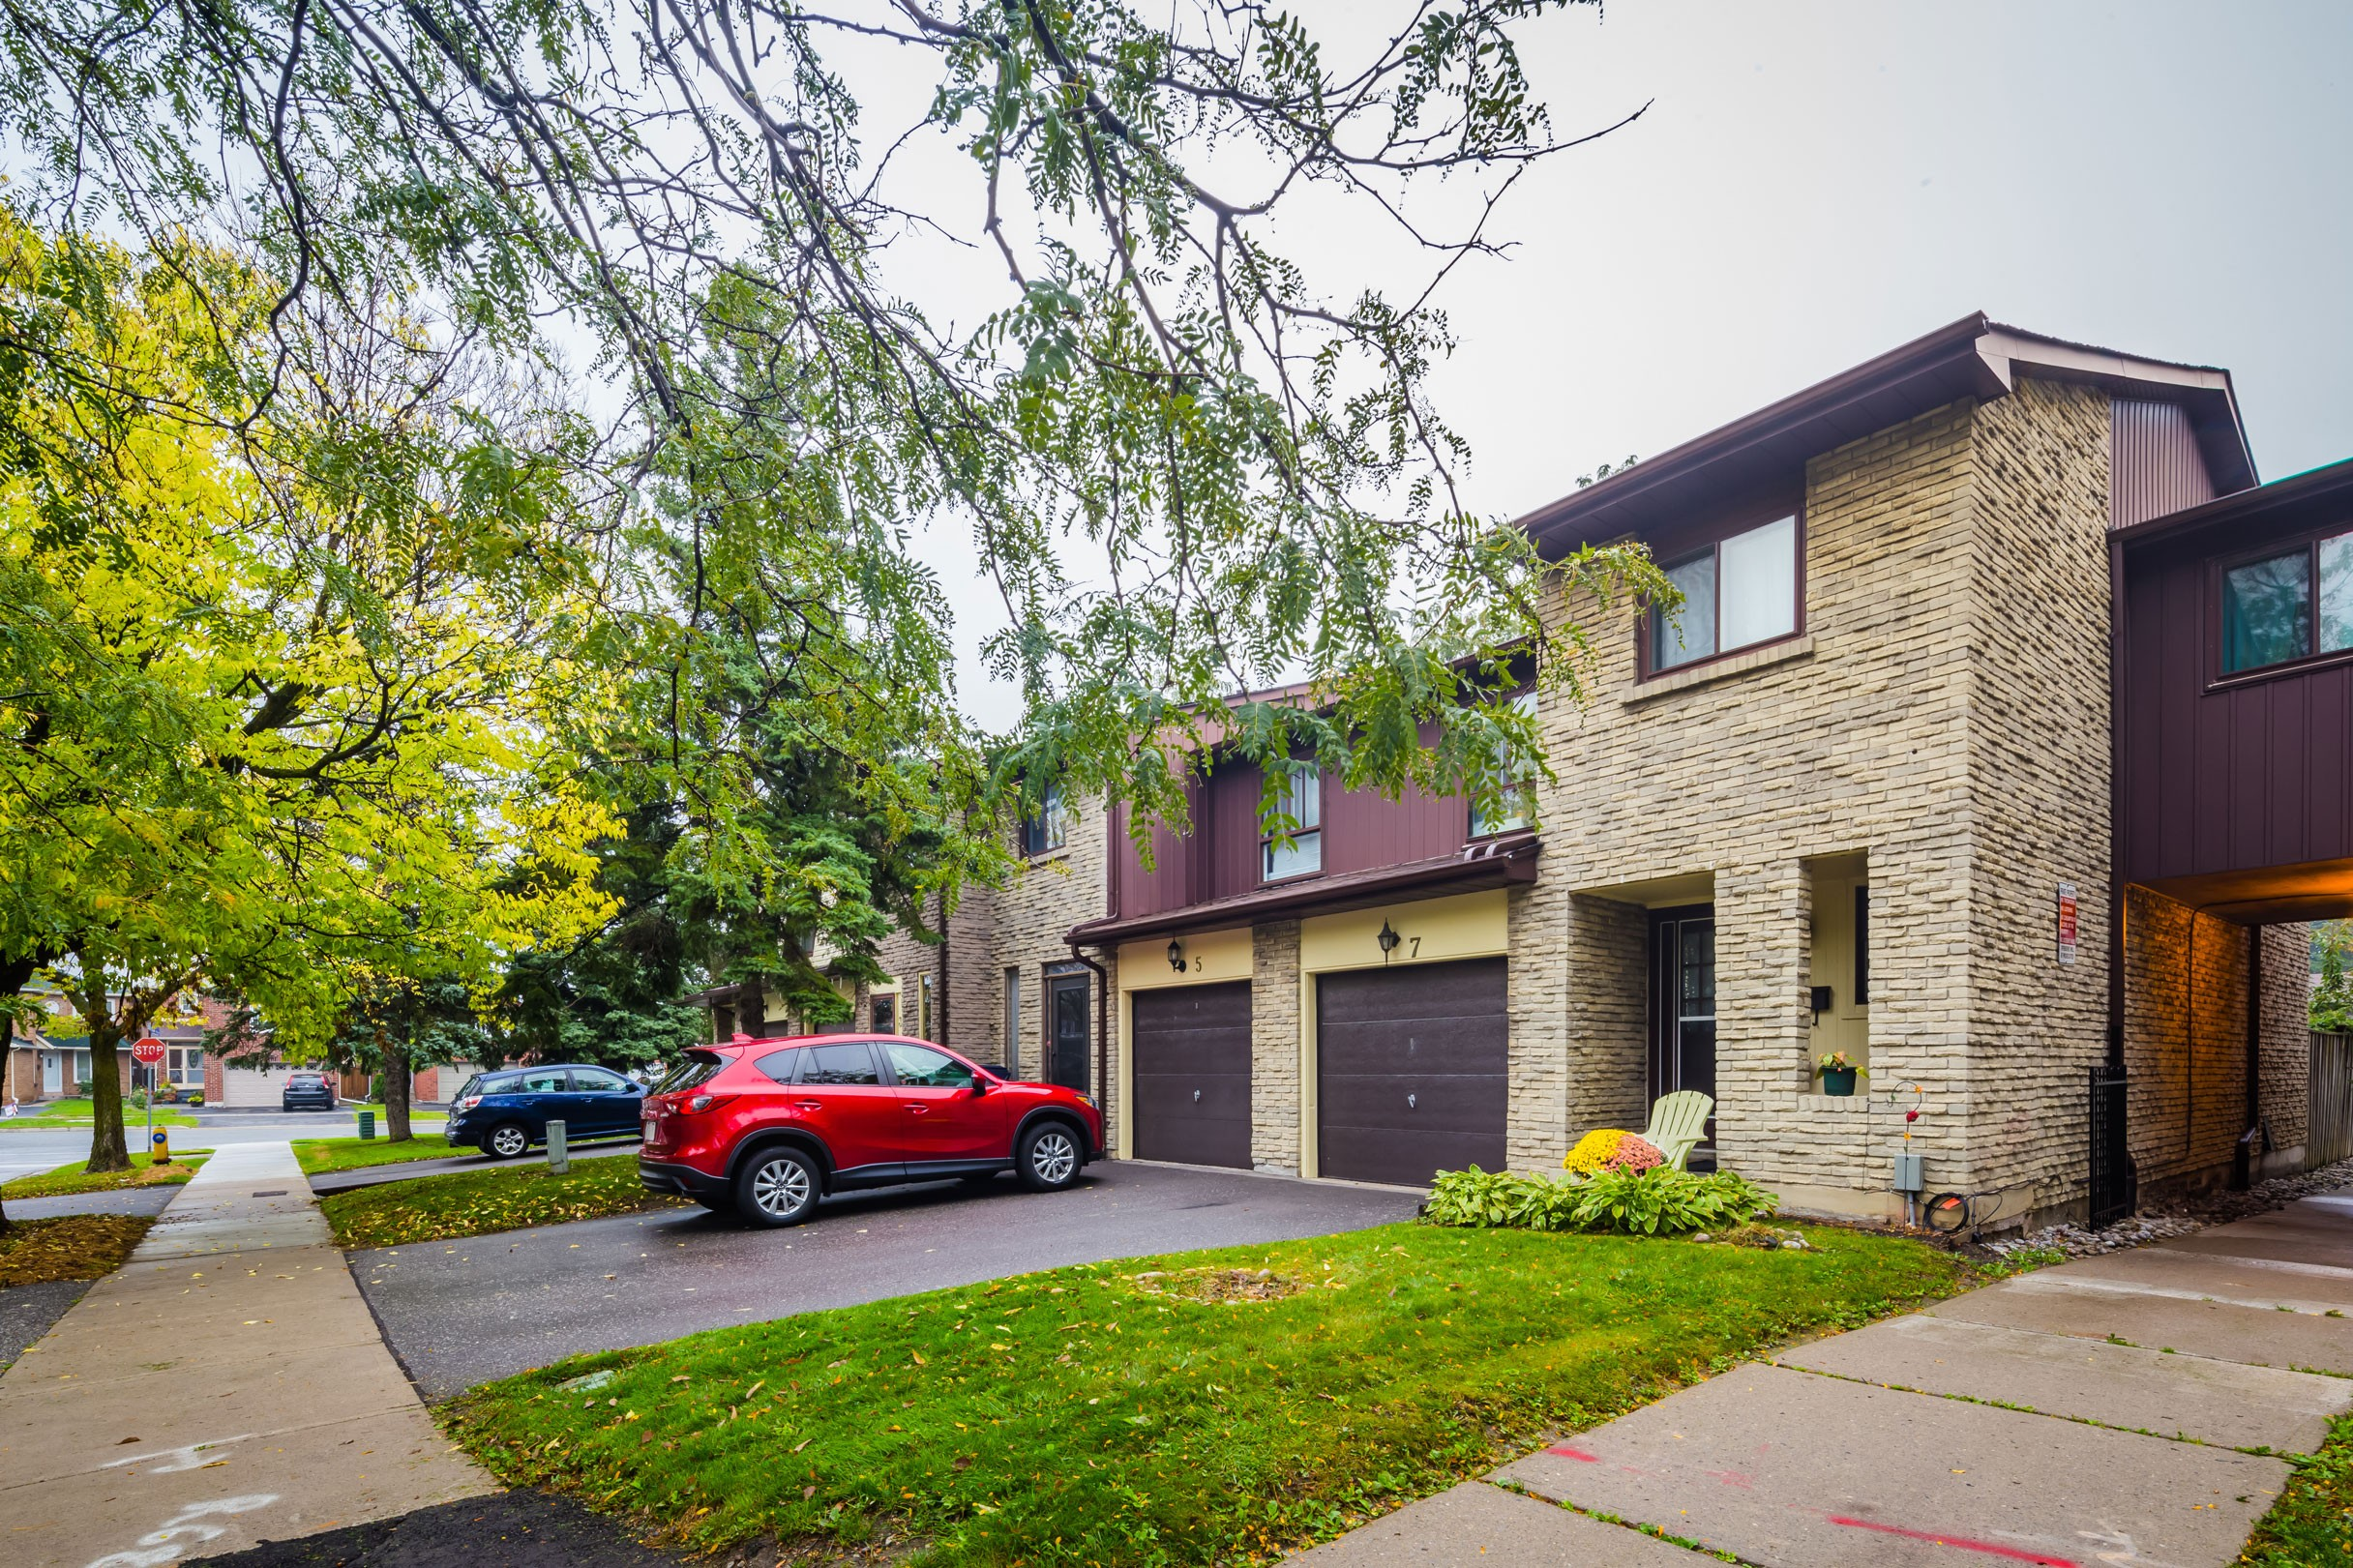 7 Thunder Grove Townhouses at 1051 Sandhurst Cir, Toronto 0